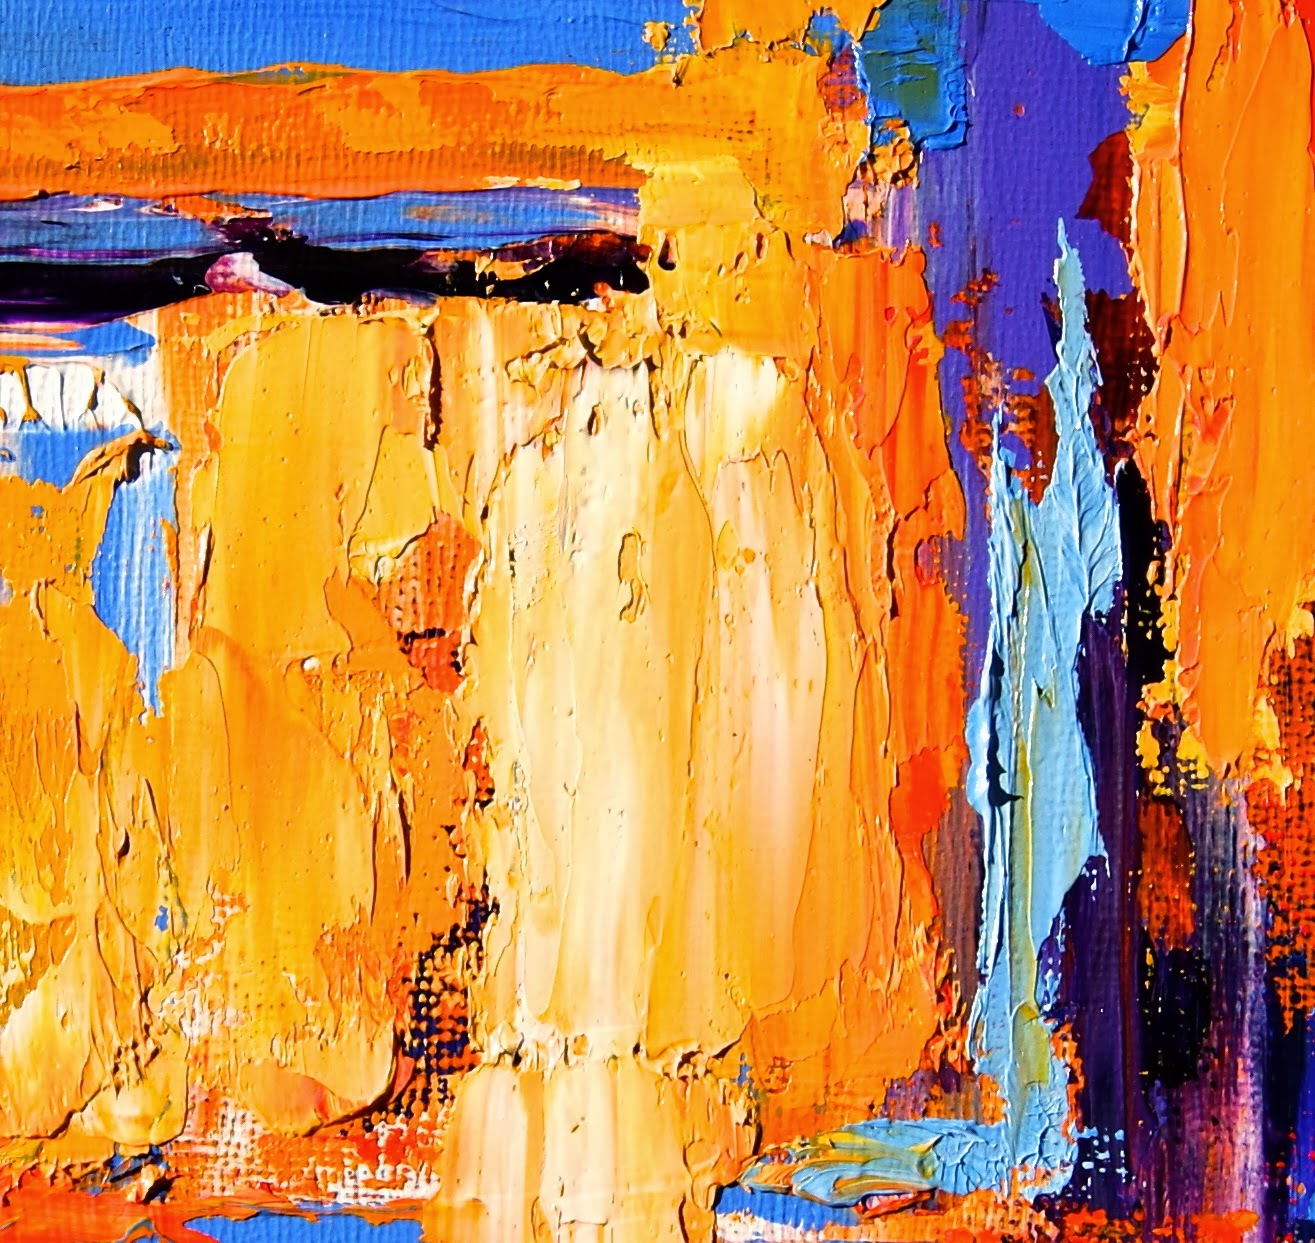 Colorful Southwestern Art Textured Abstract Oil Painting In